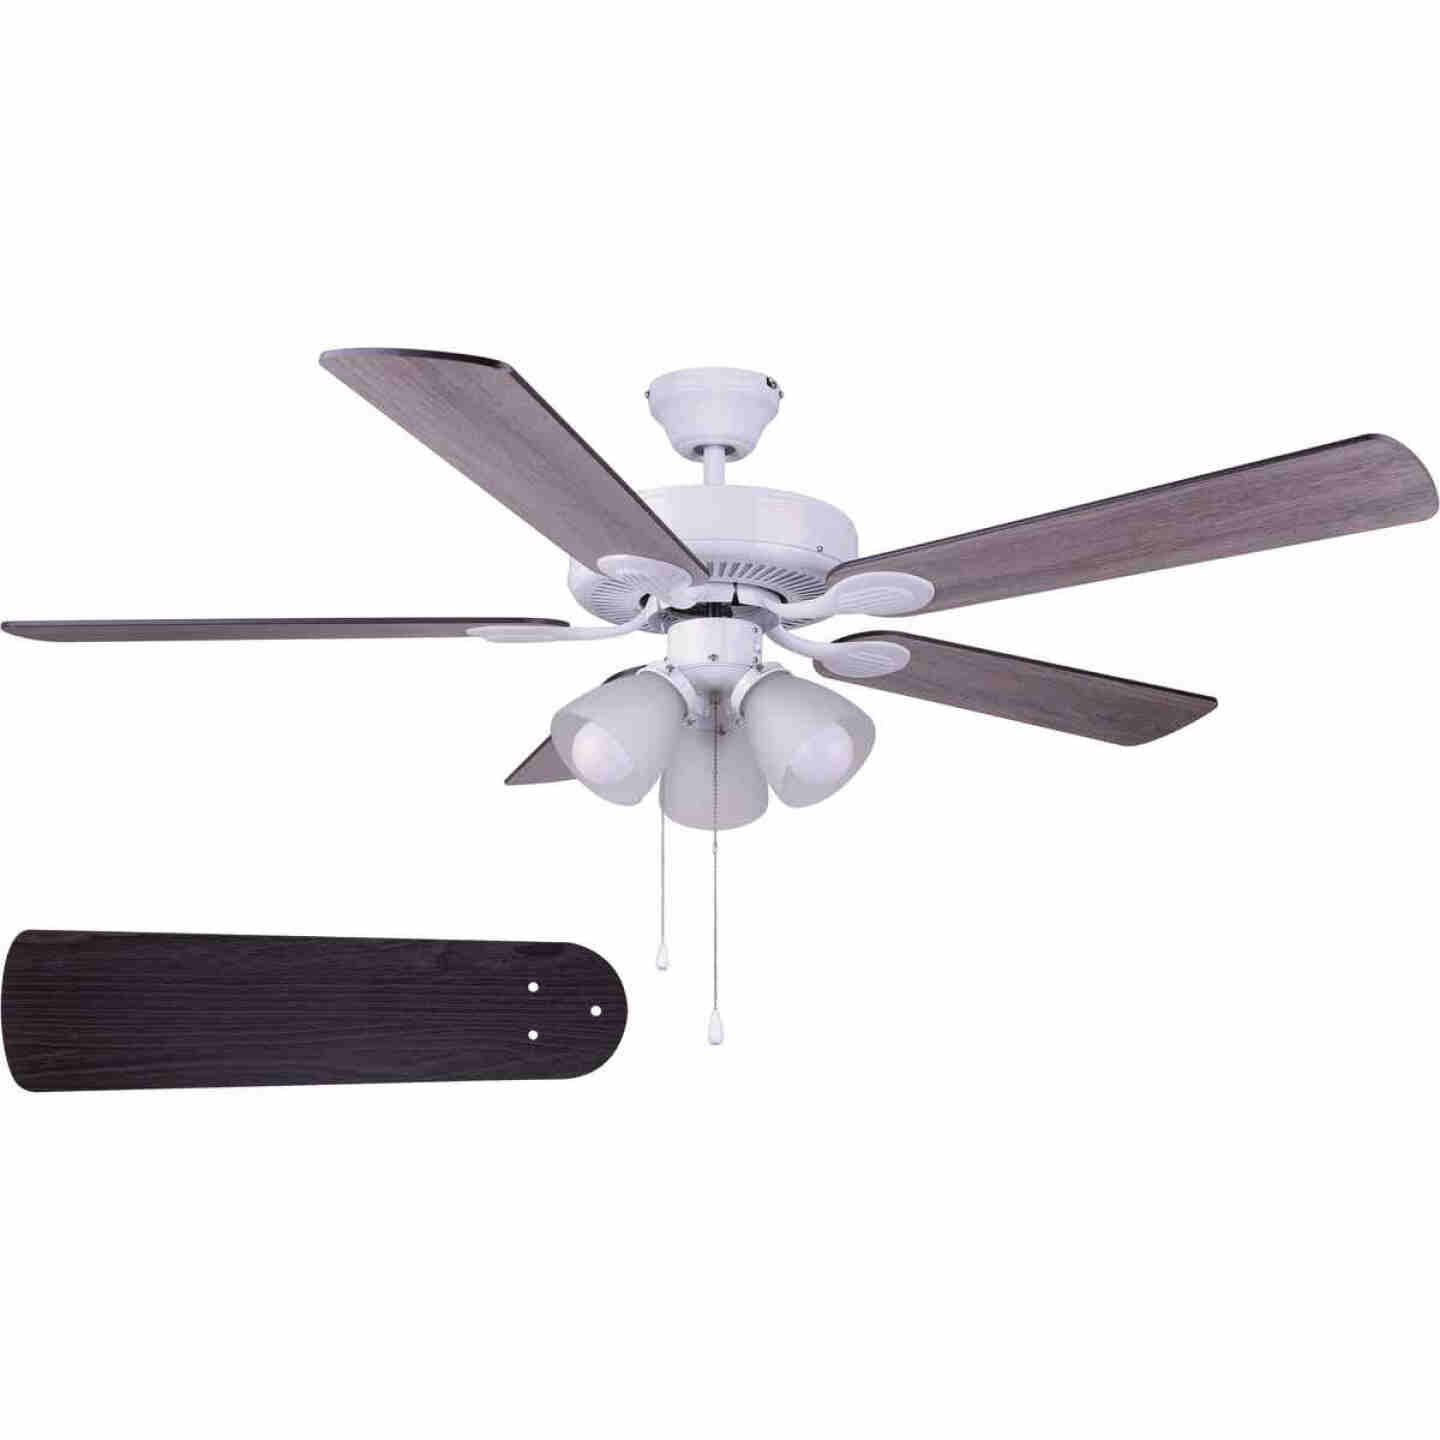 Home Impressions Villa 52 In. White Ceiling Fan with Light Kit Image 1